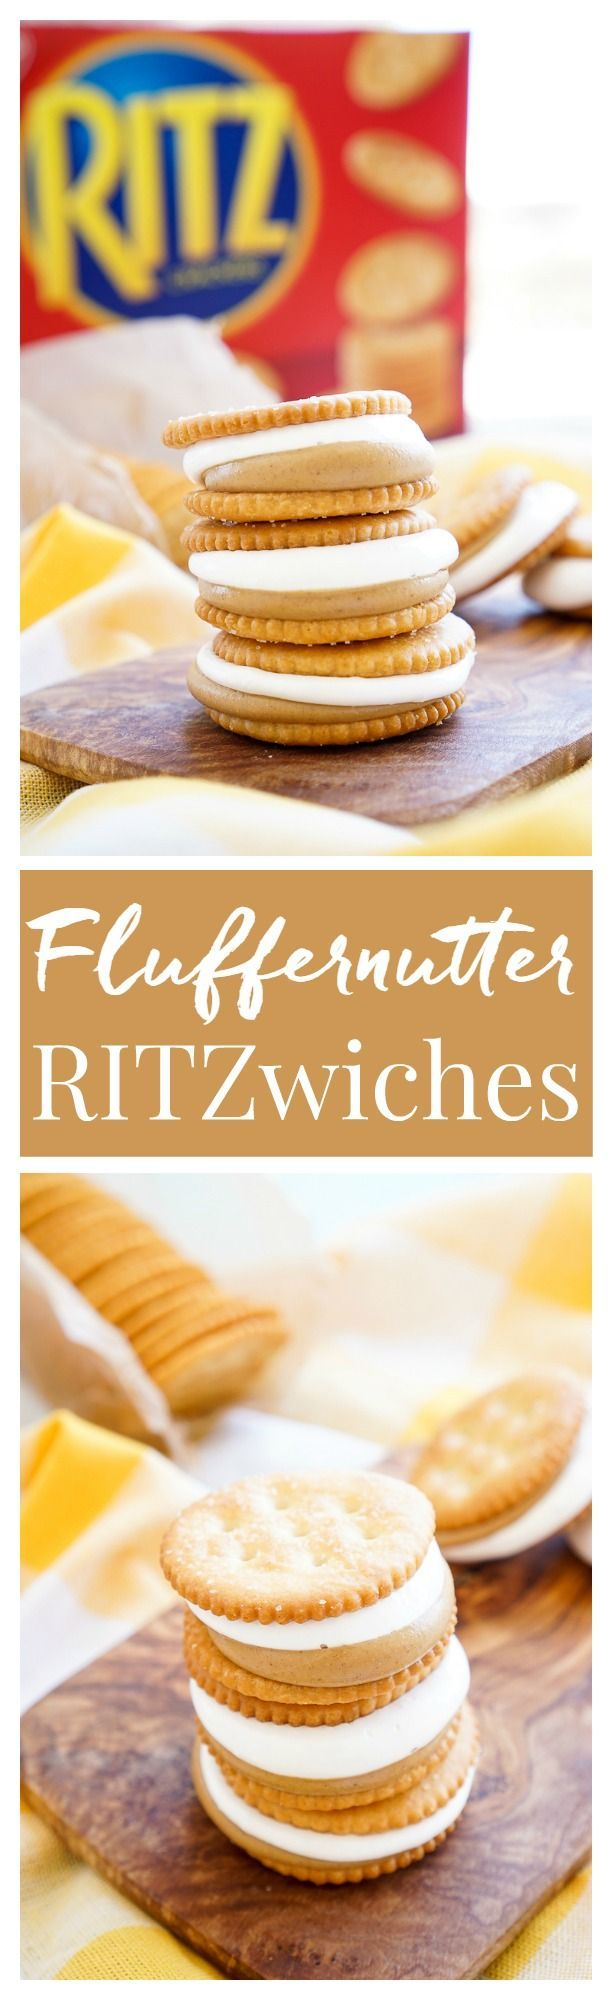 These Fluffernutter RITZwiches are a fun mix of two childhood classics! Who doesn't love peanut butter and marshmallow fluff sandwiched between two buttery RITZ crackers! It's the ultimate easy snack that's ready in just a 5 minutes! You can trade out the peanut butter for cookie butter or sun butter too! #stackitup #ad